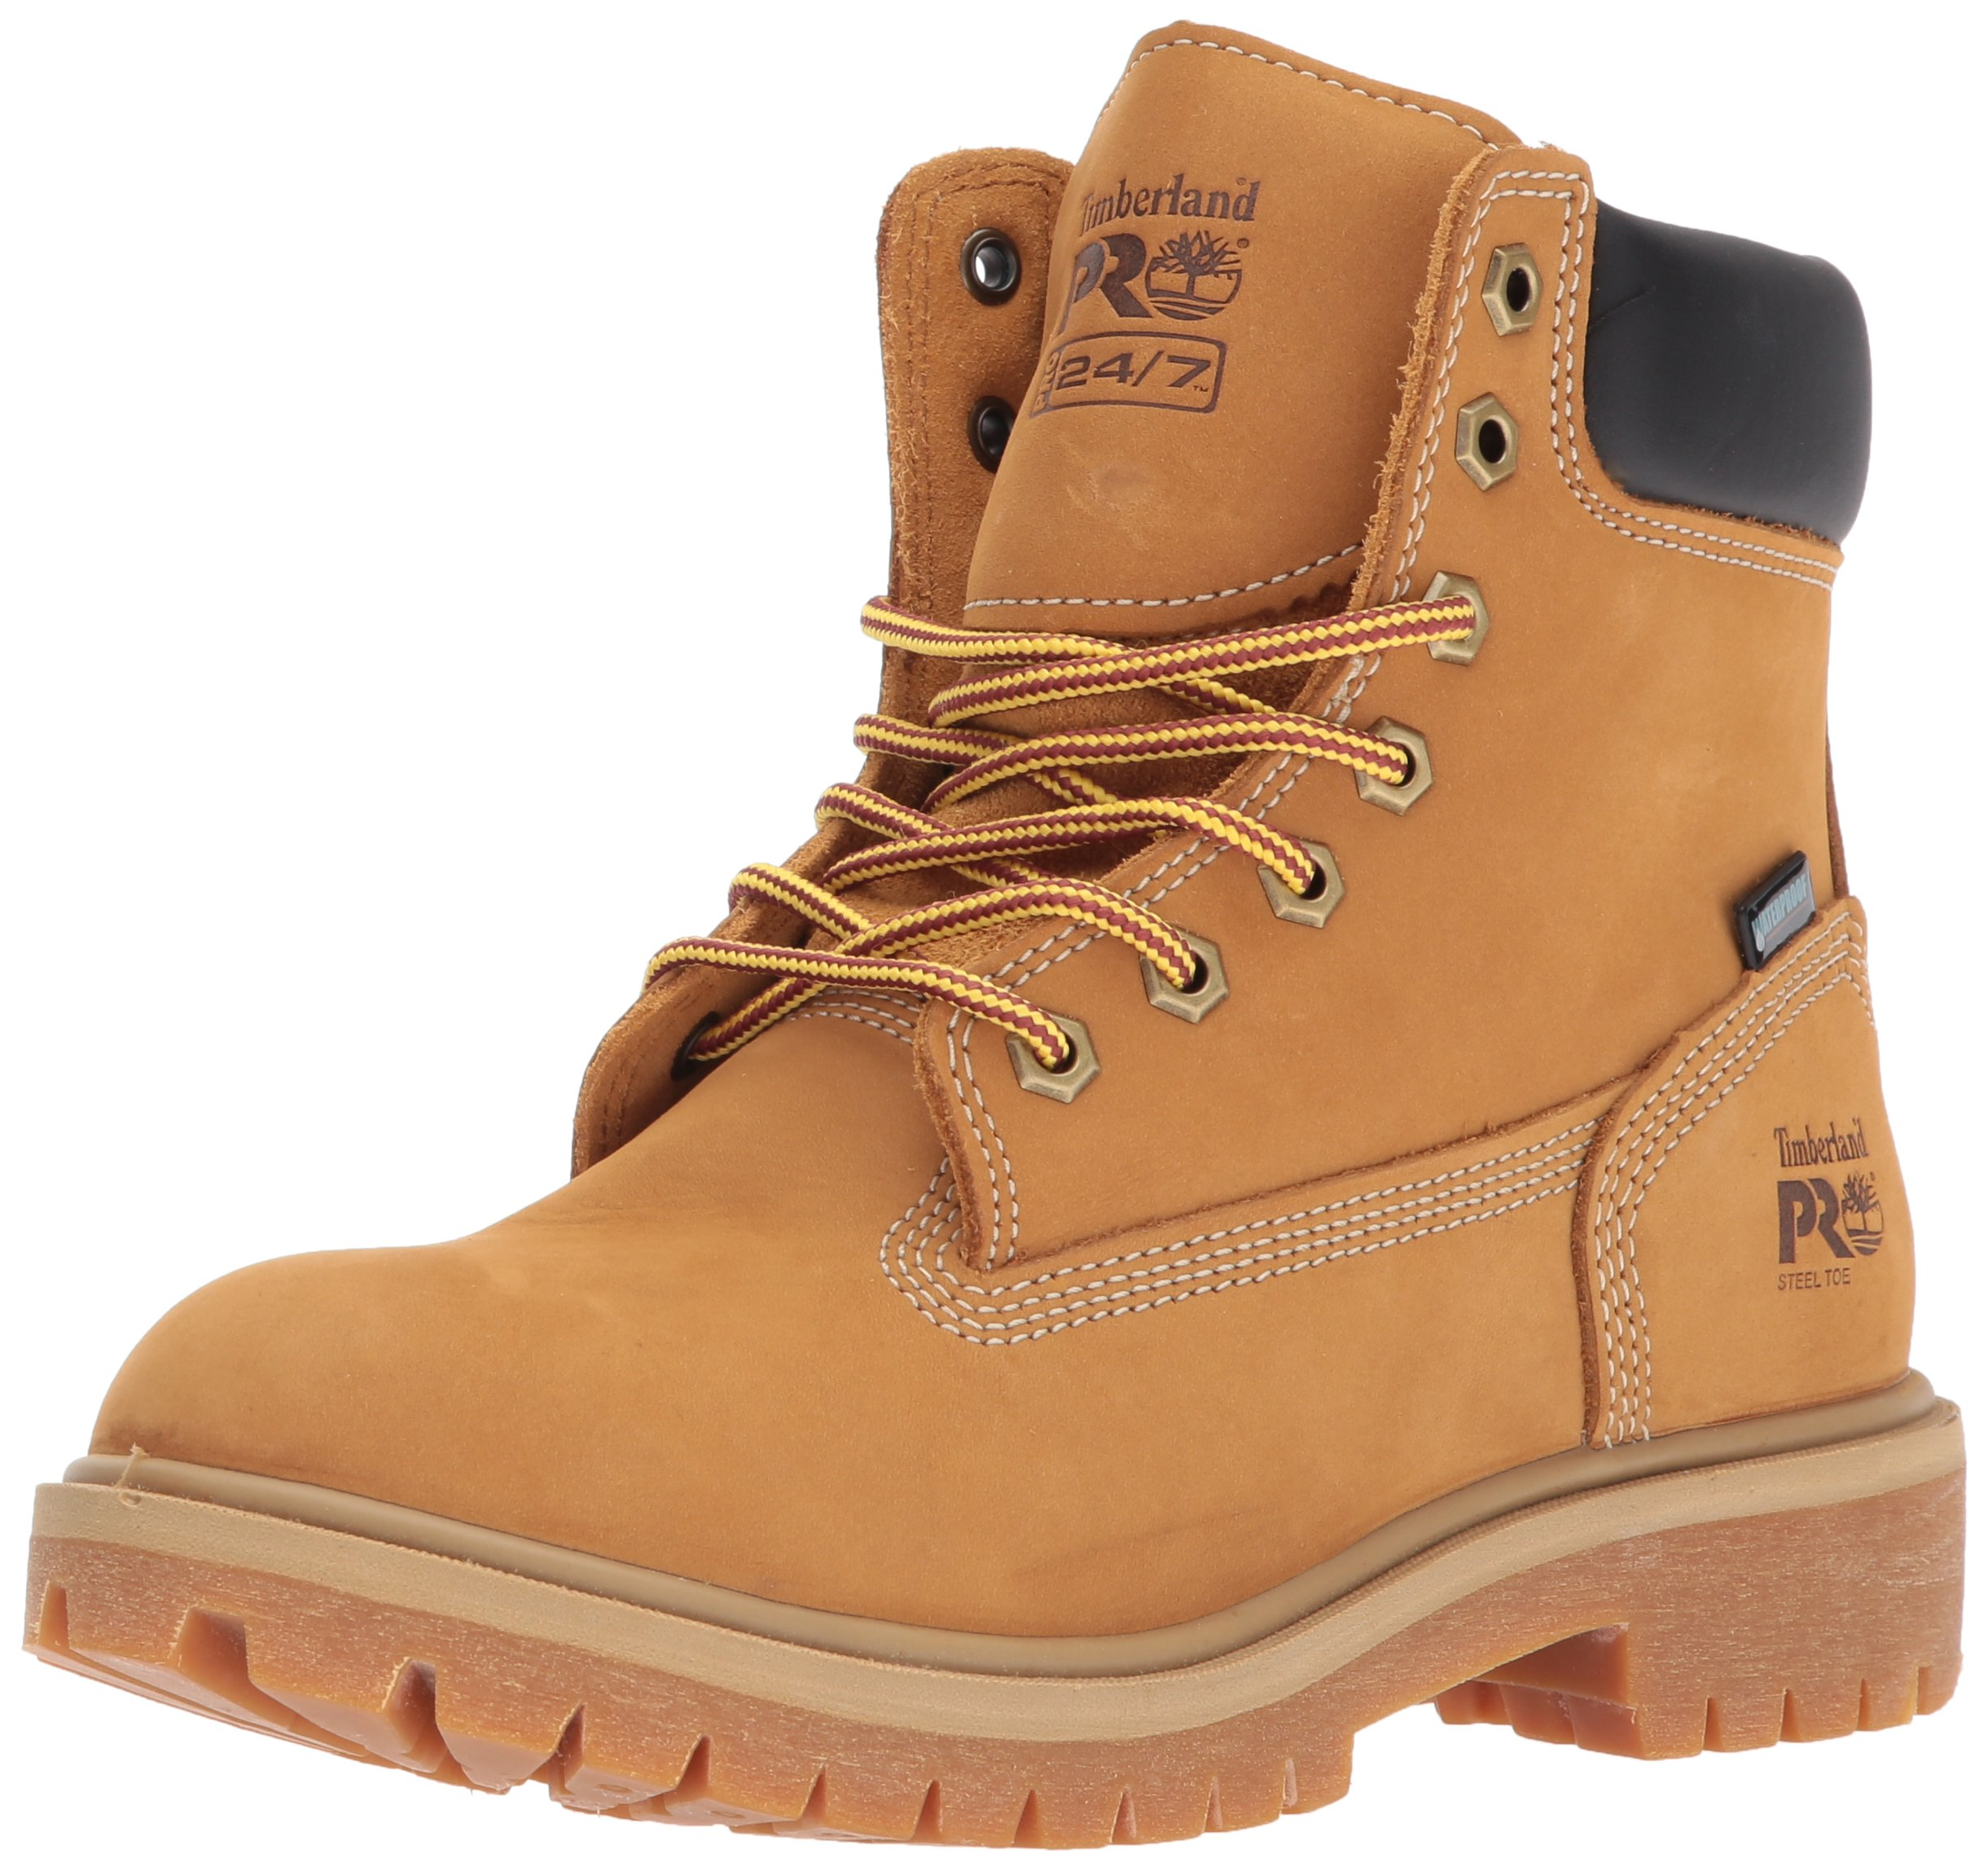 "Timberland PRO Women's Direct Attach 6"" Steel-Toe Waterproof Insulated Work Shoe"